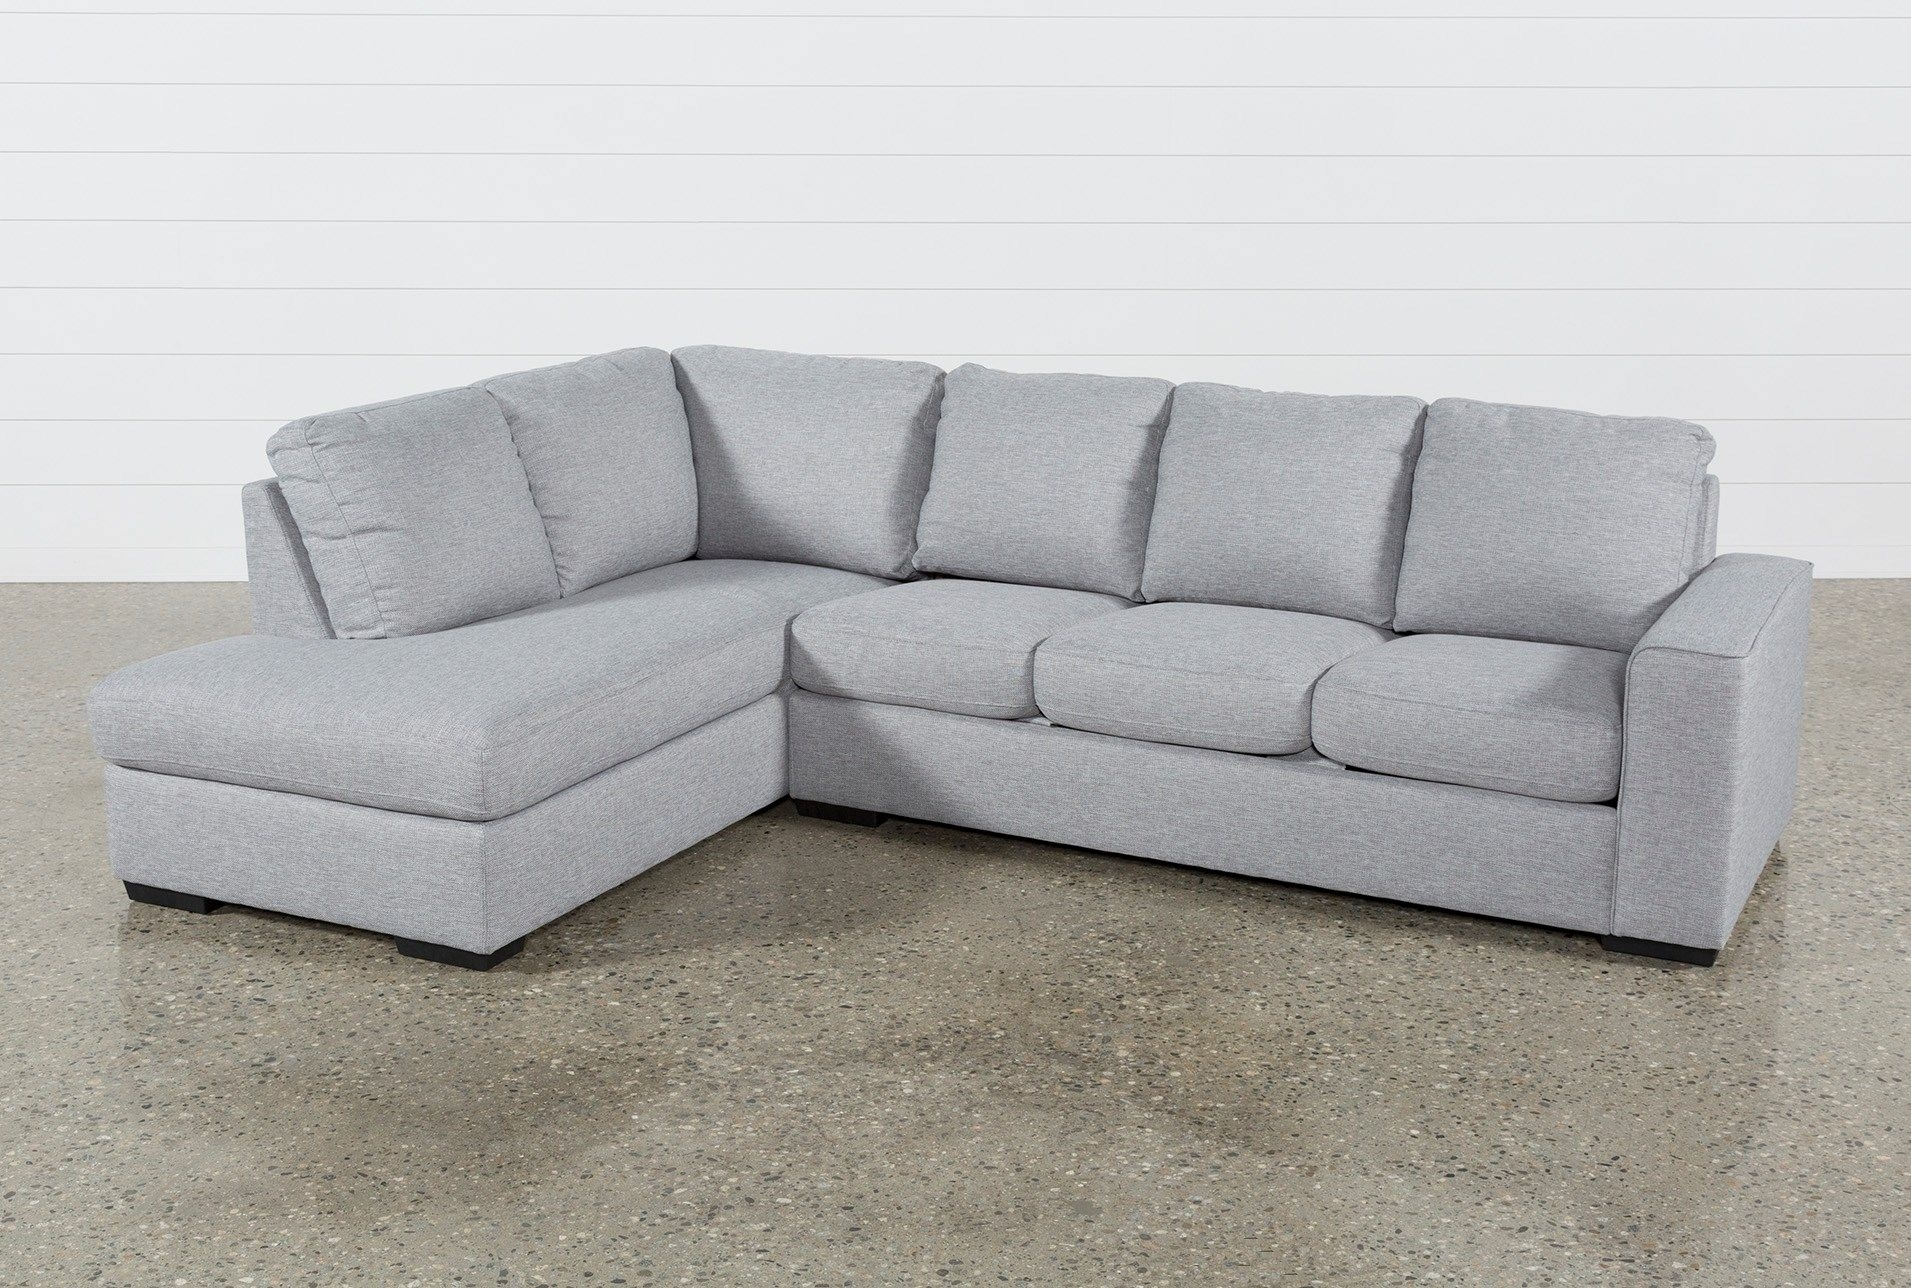 Lucy Grey 2 Piece Sectional W/laf Chaise | Tx House | Pinterest intended for Kerri 2 Piece Sectionals With Laf Chaise (Image 24 of 30)